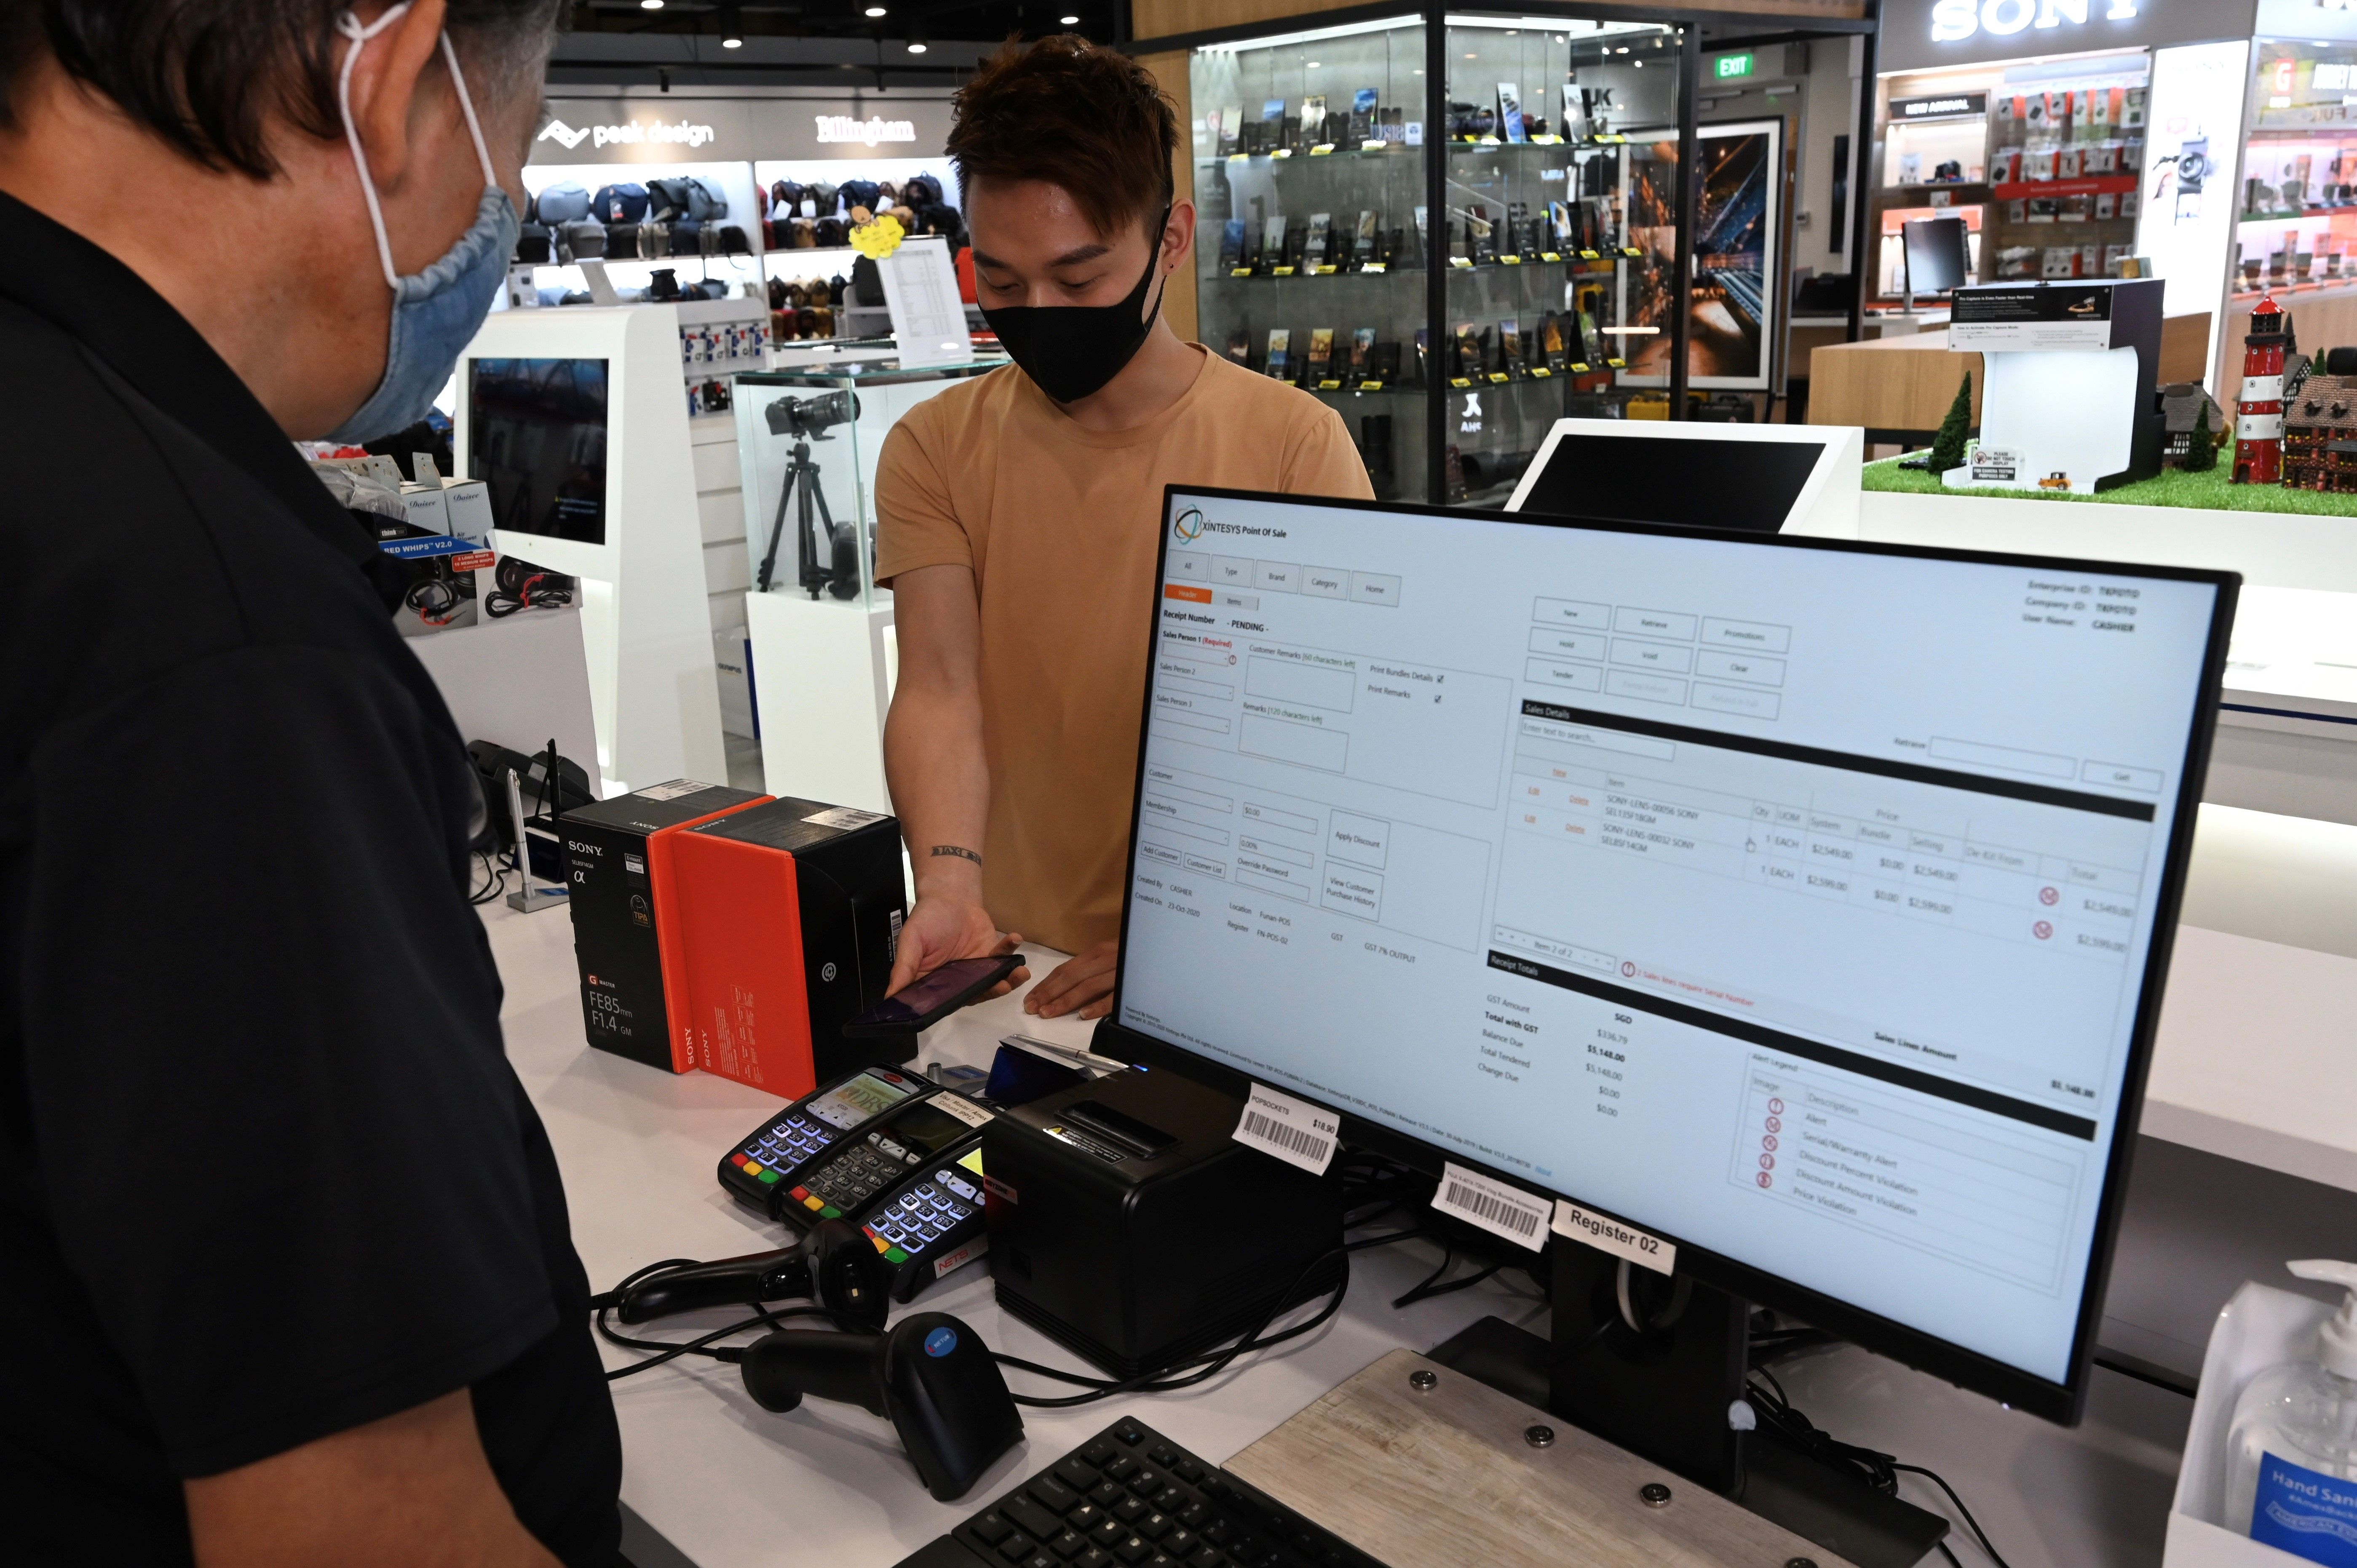 T K Foto staff using a Sales and Inventory Management solution which seamlessly integrates its POS data and inventory tracking.